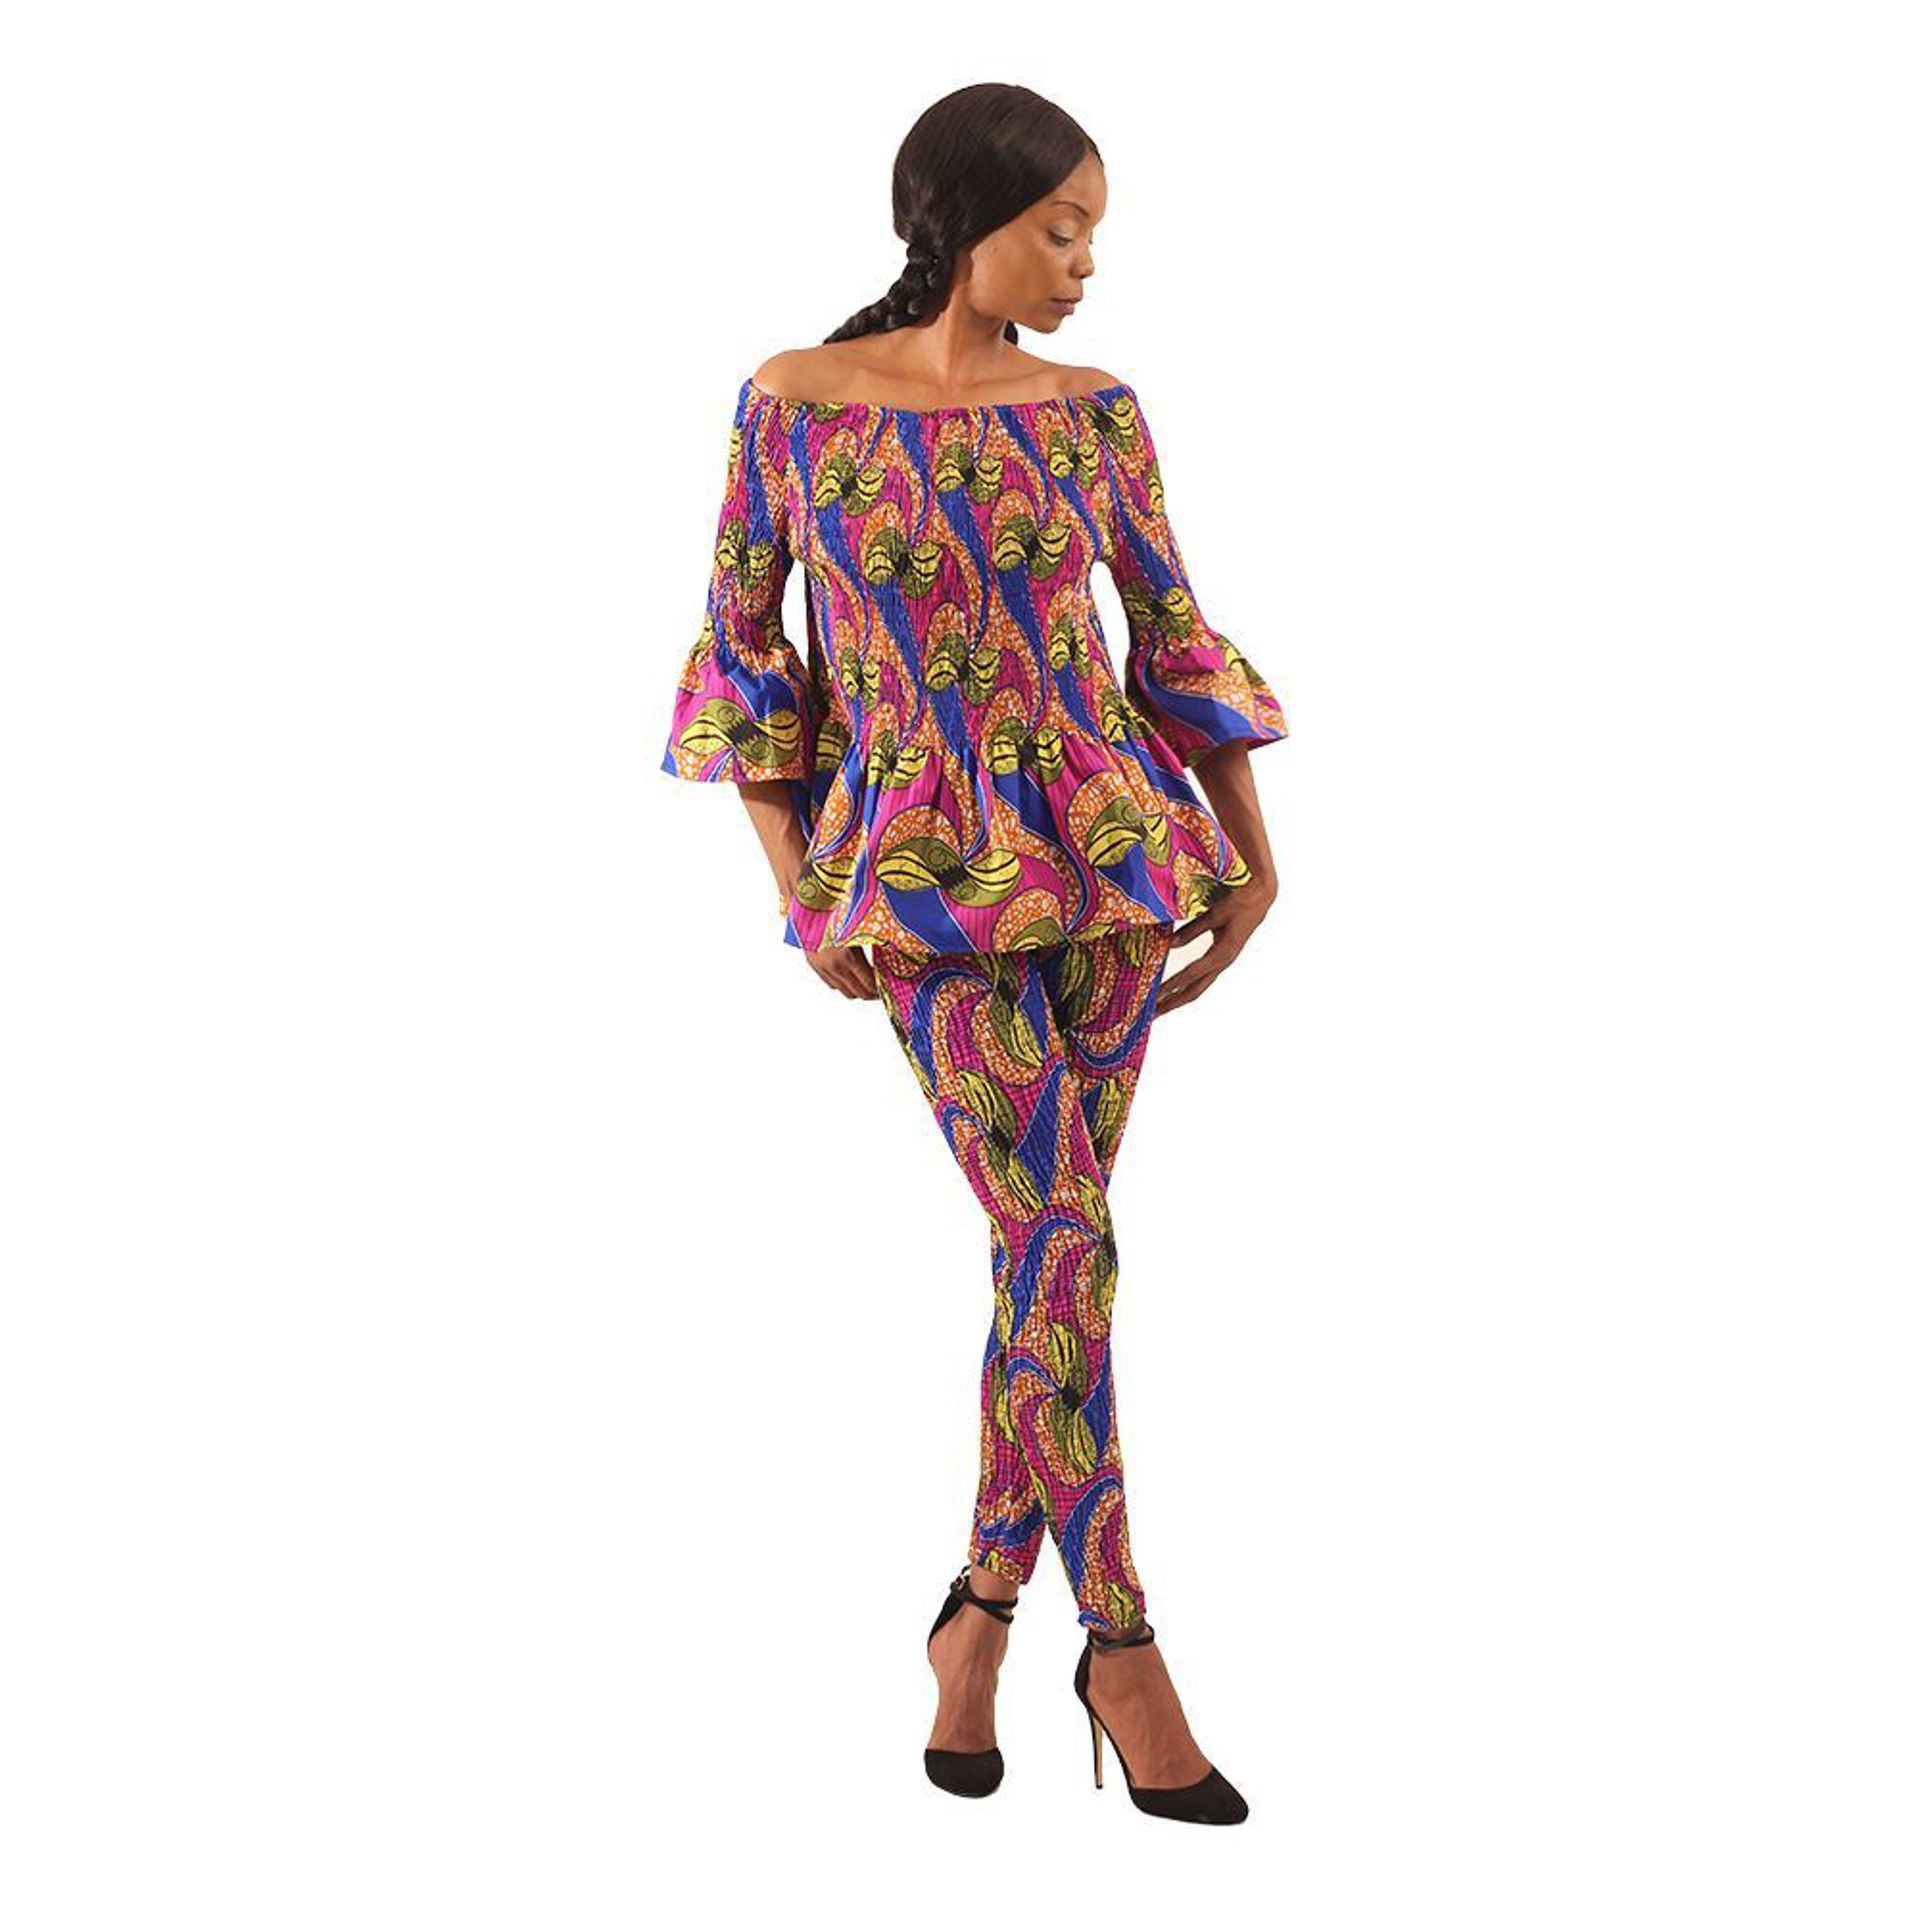 Picture of Pnk/Blu/Brn African Print Leggings Set